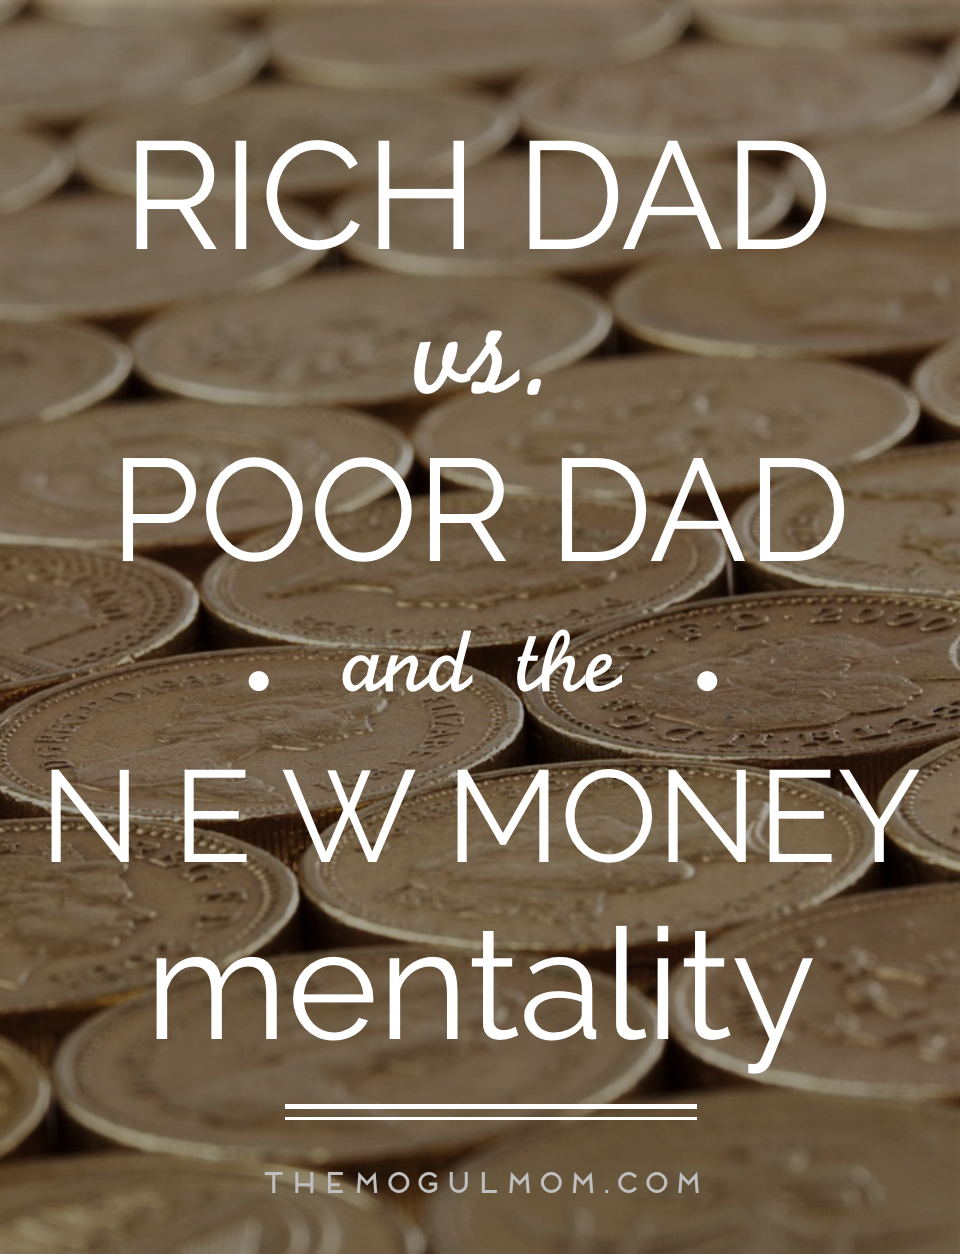 Making a Fortune When You Were Raised by 'Poor Dad'